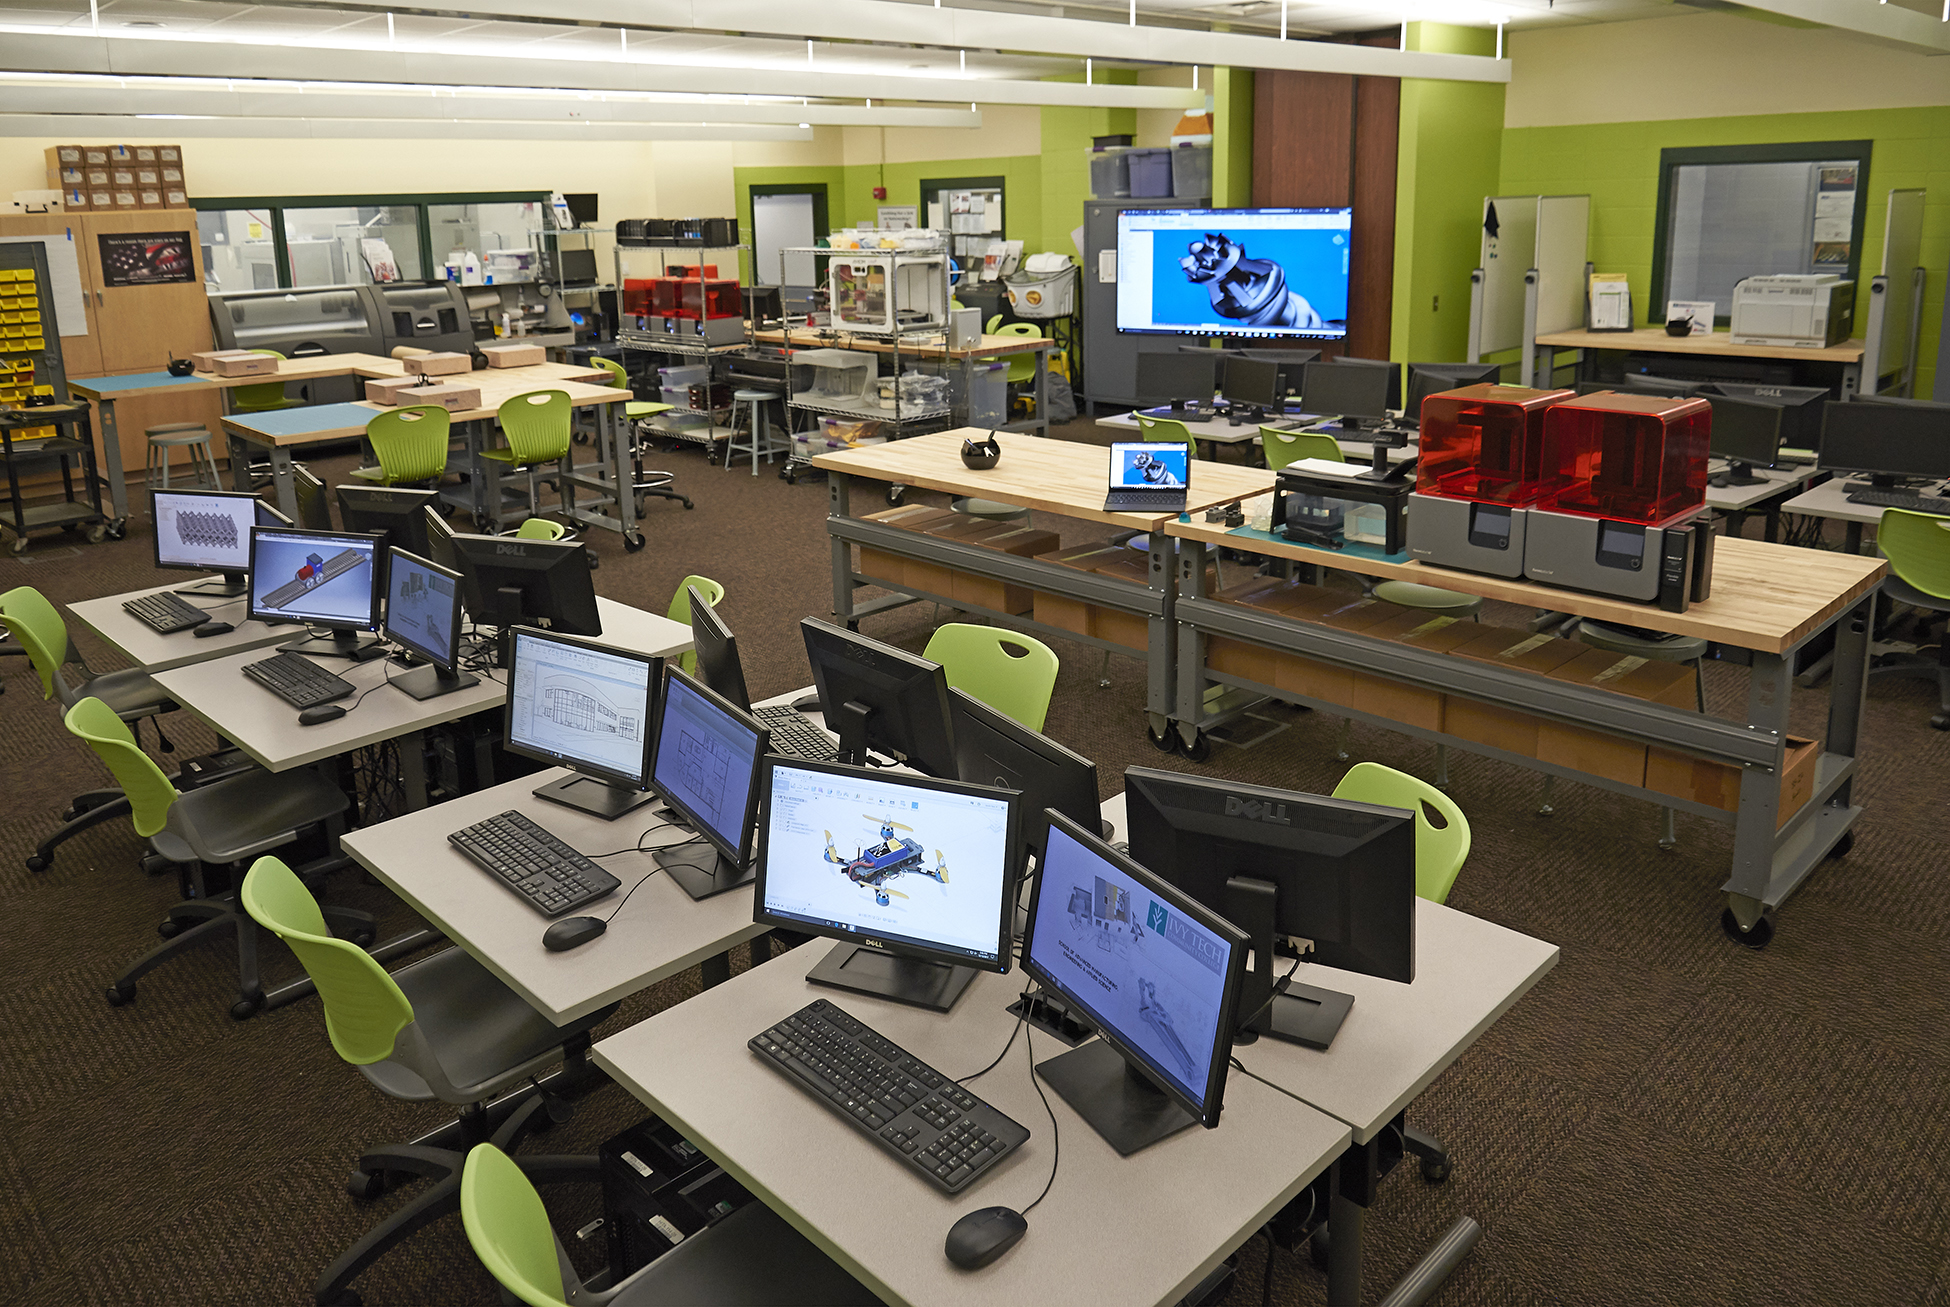 Desks set up in pods in Ivy Tech's fab lab space.